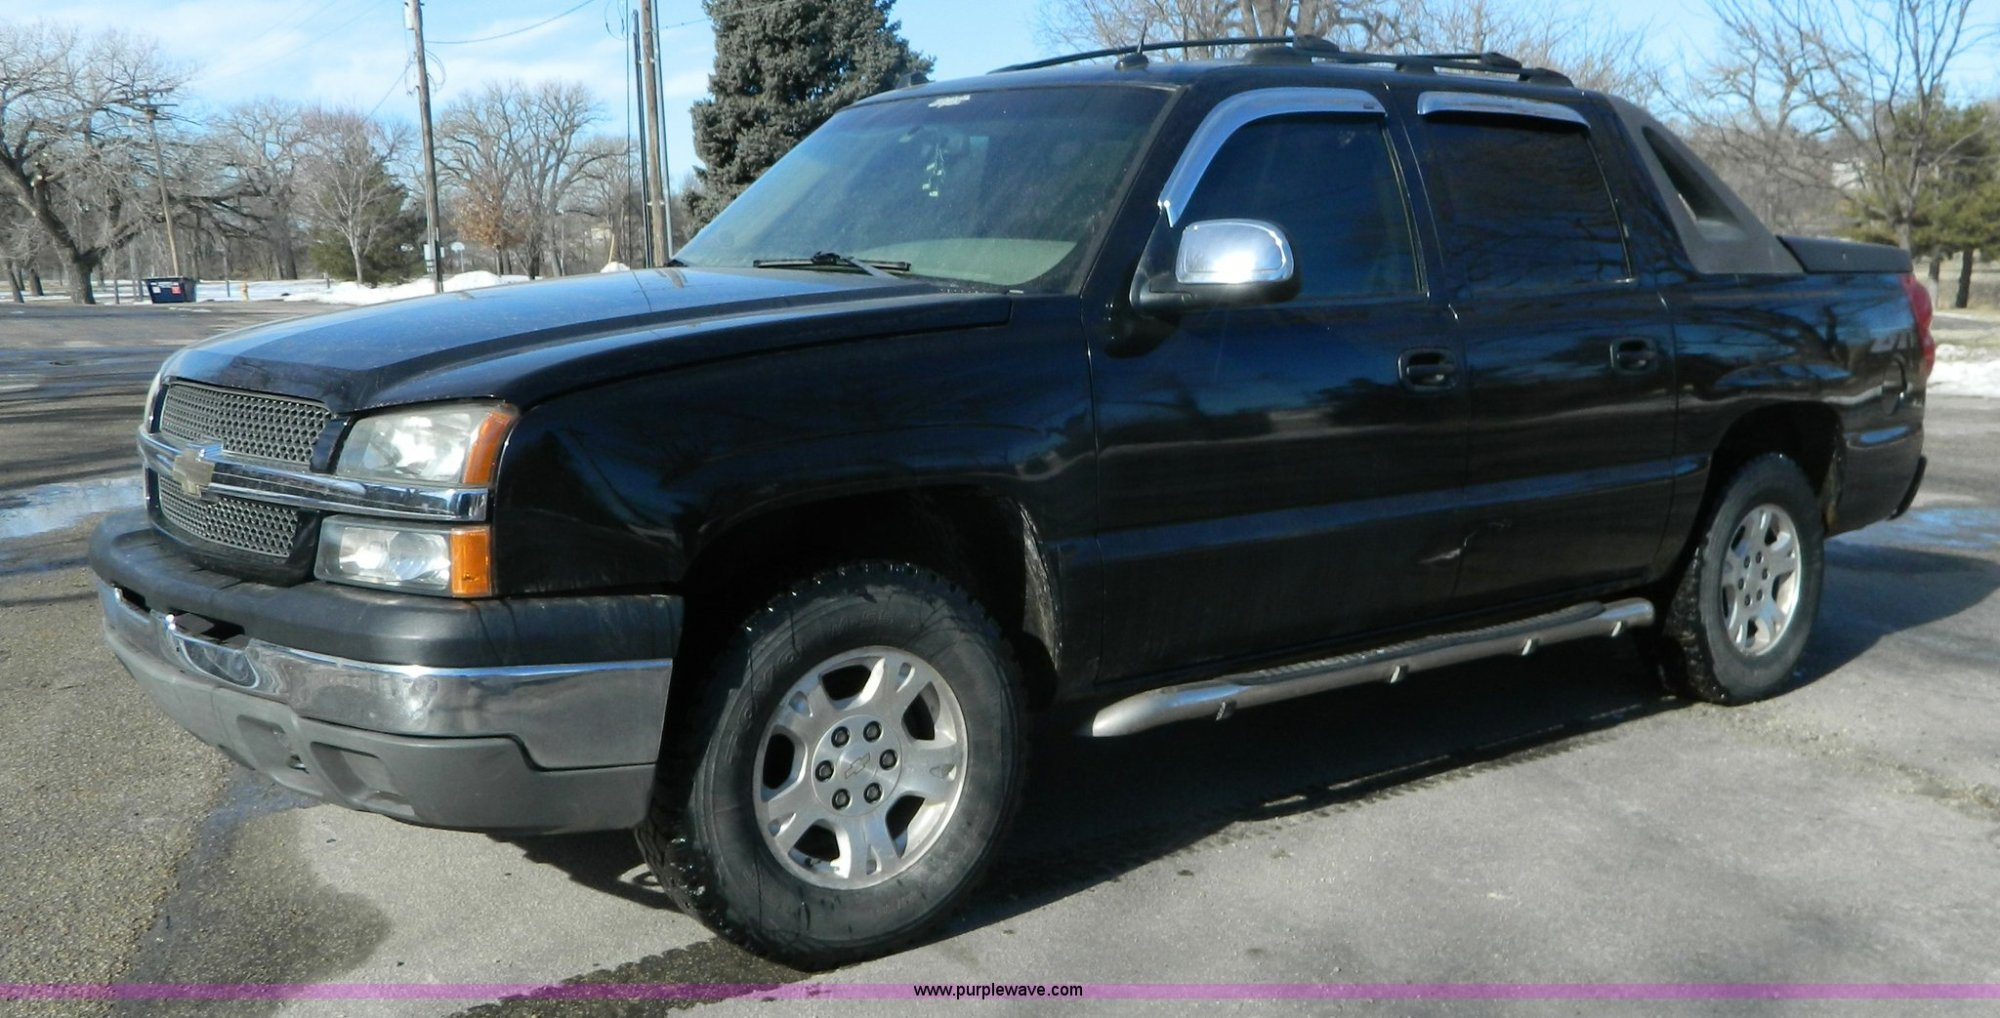 hight resolution of l7314 image for item l7314 2004 chevrolet avalanche 1500